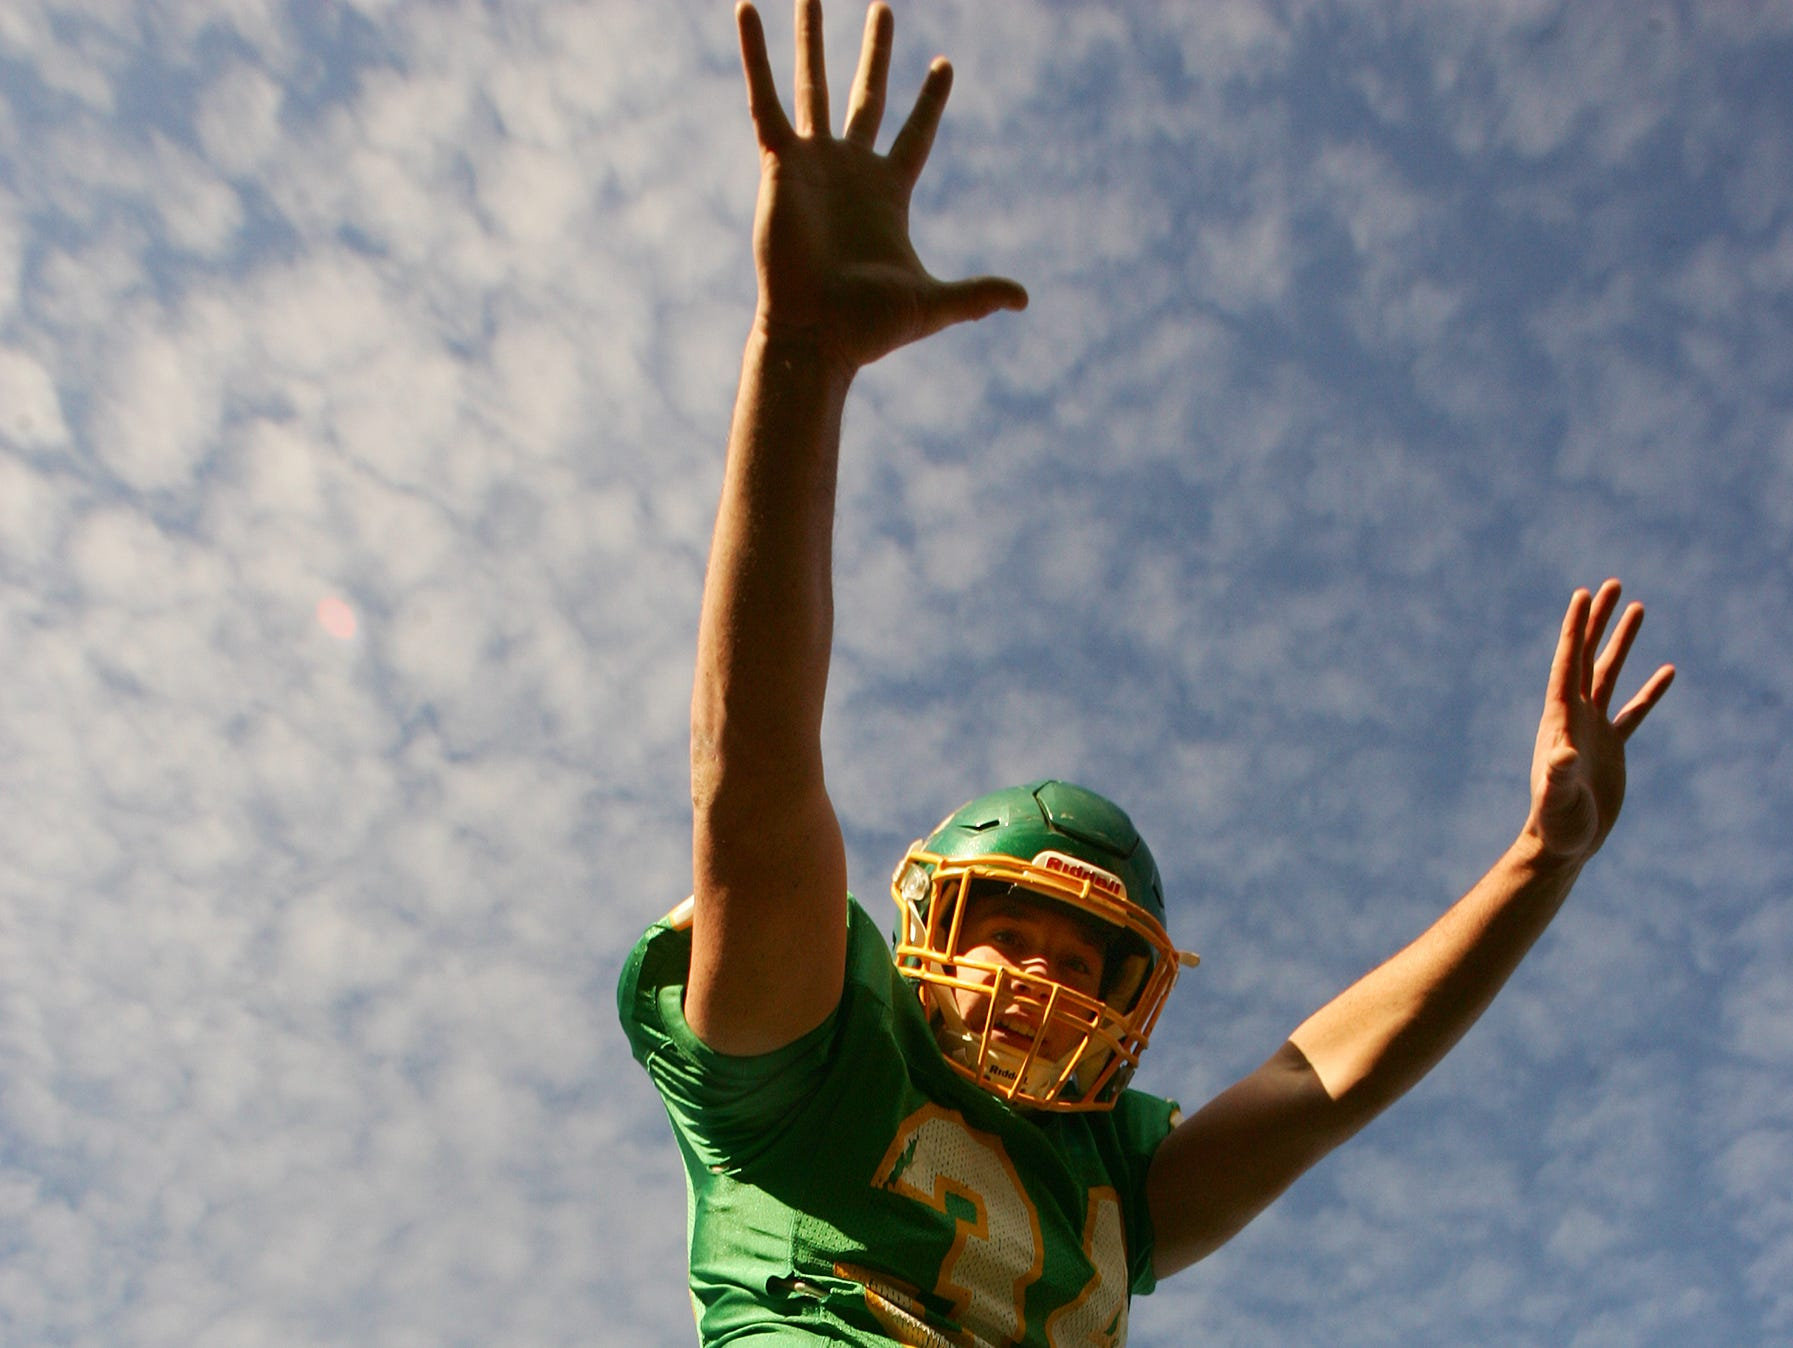 Newark Catholic linebacker Wes Jurden is The Advocate Defensive Player of the Year.